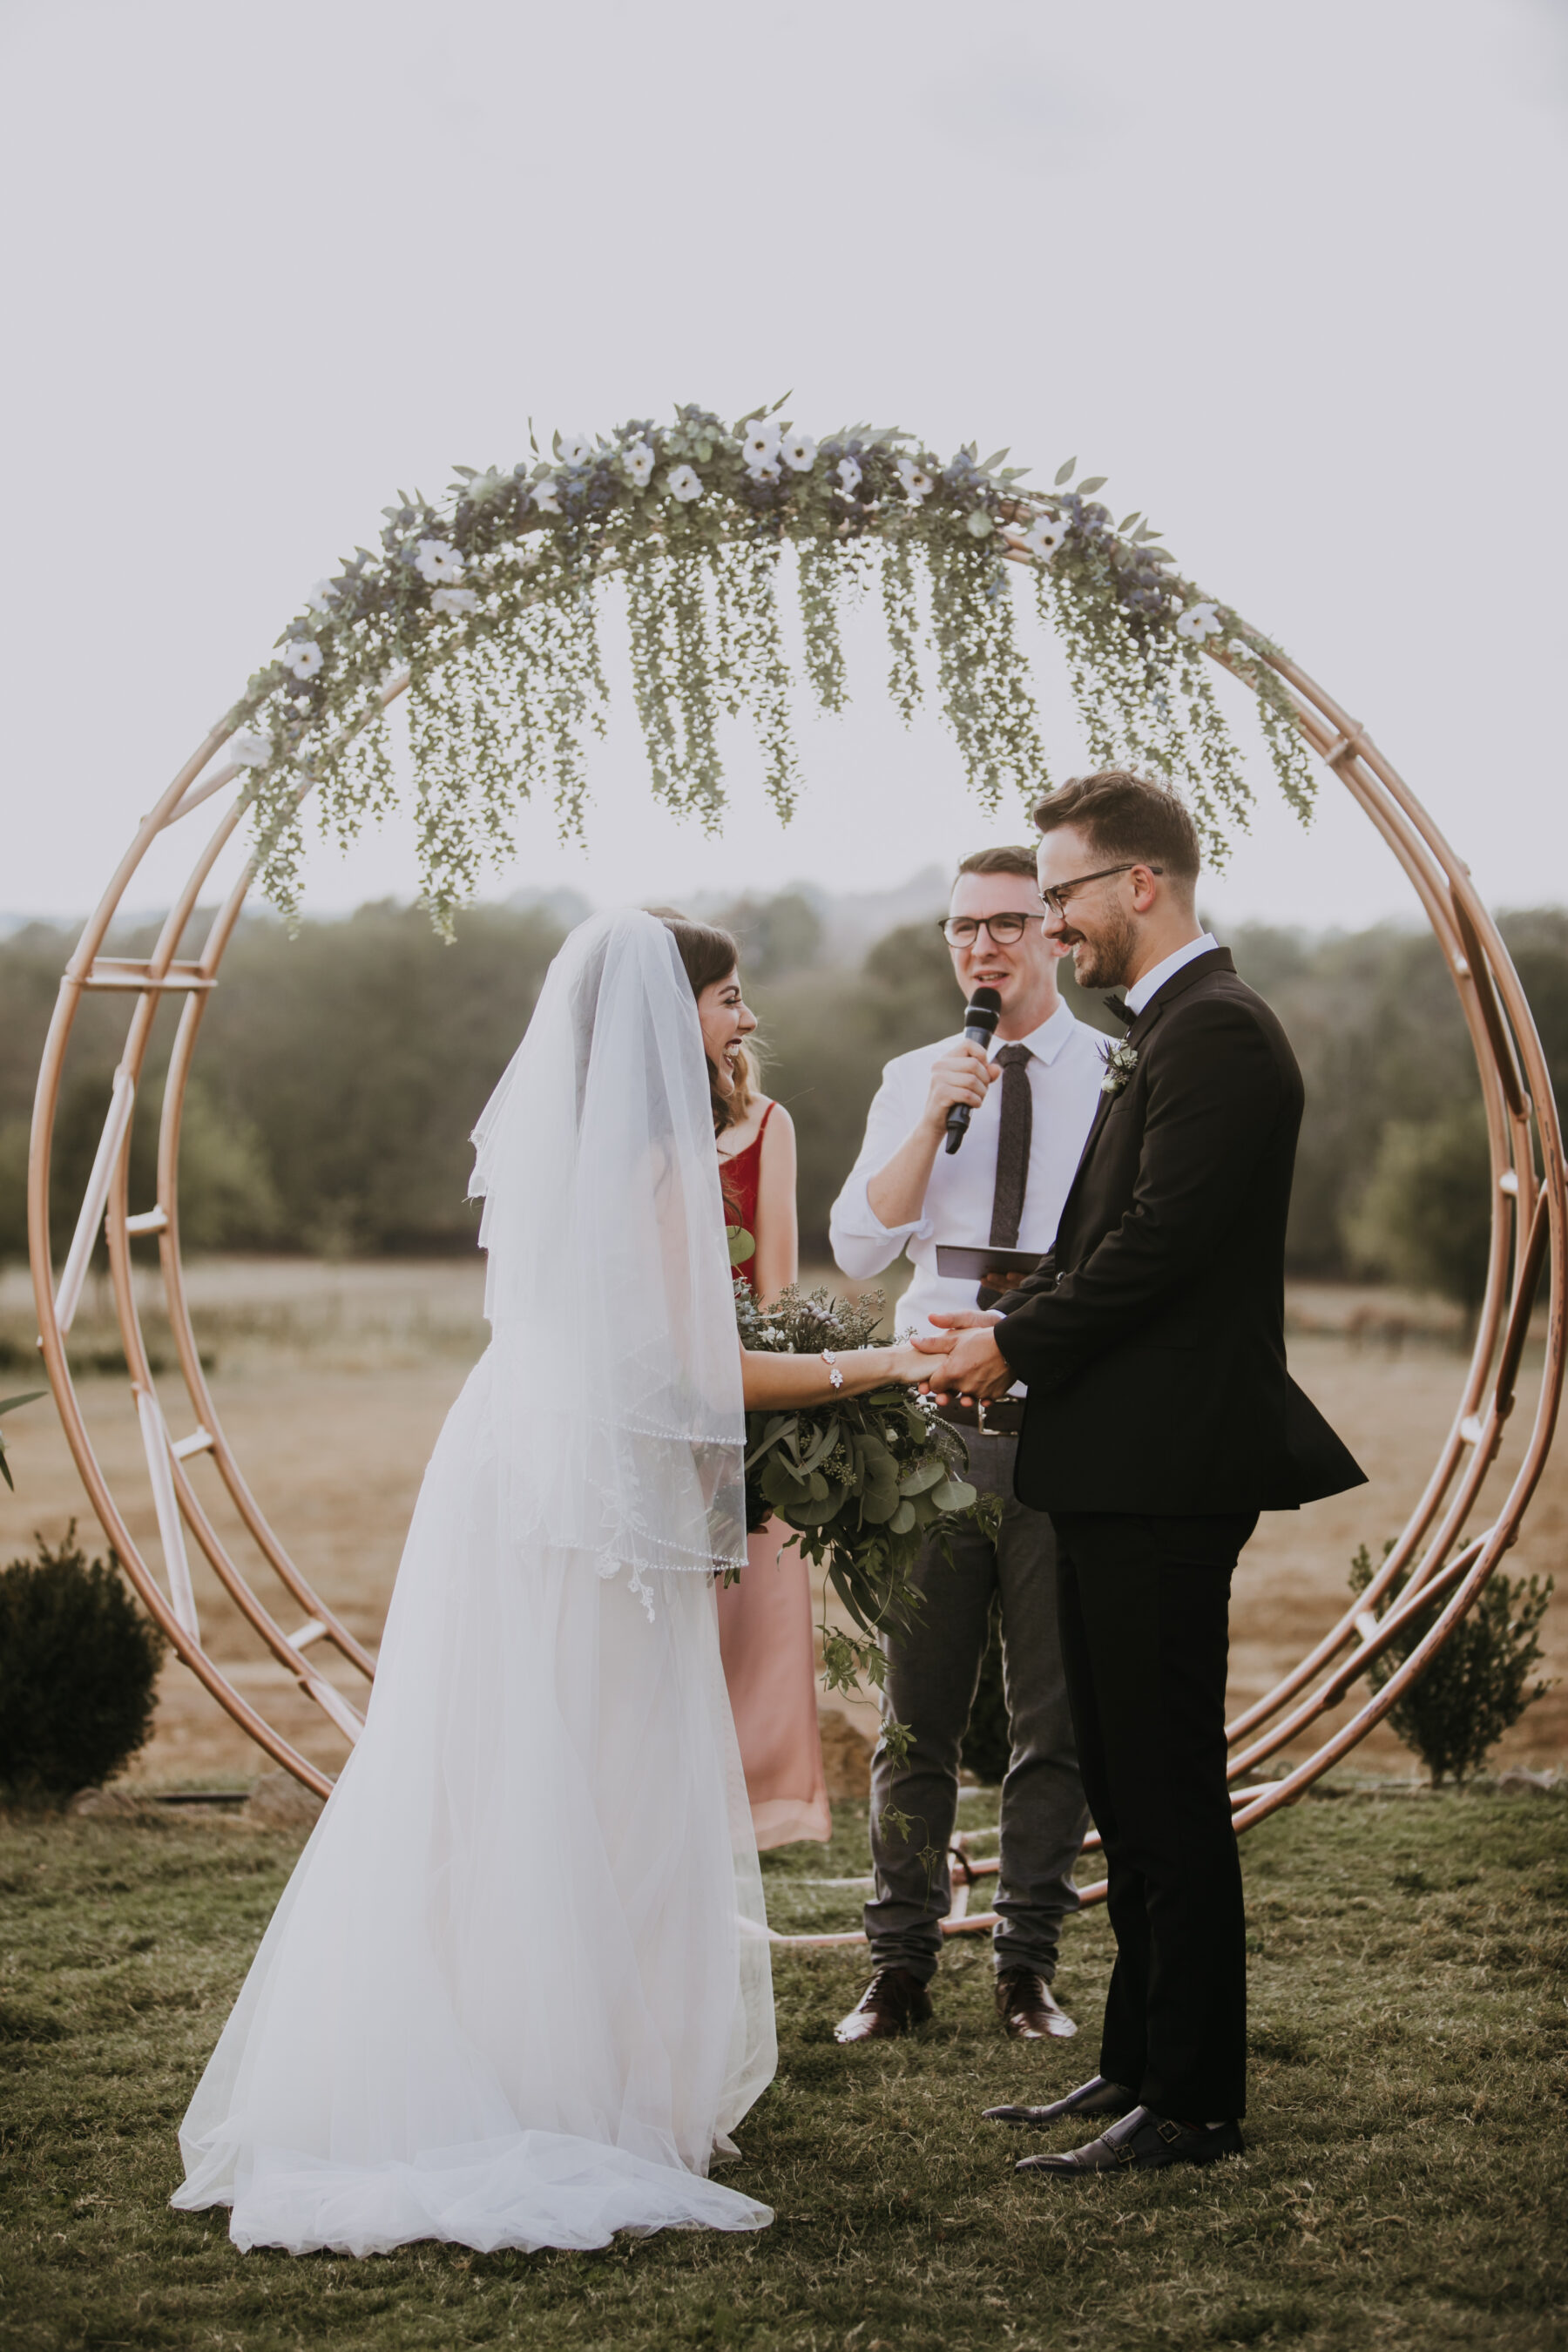 Circular wedding ceremony arch: Nashville Wedding with Beautiful Views by Teale Photography featured on Nashville Bride Guide